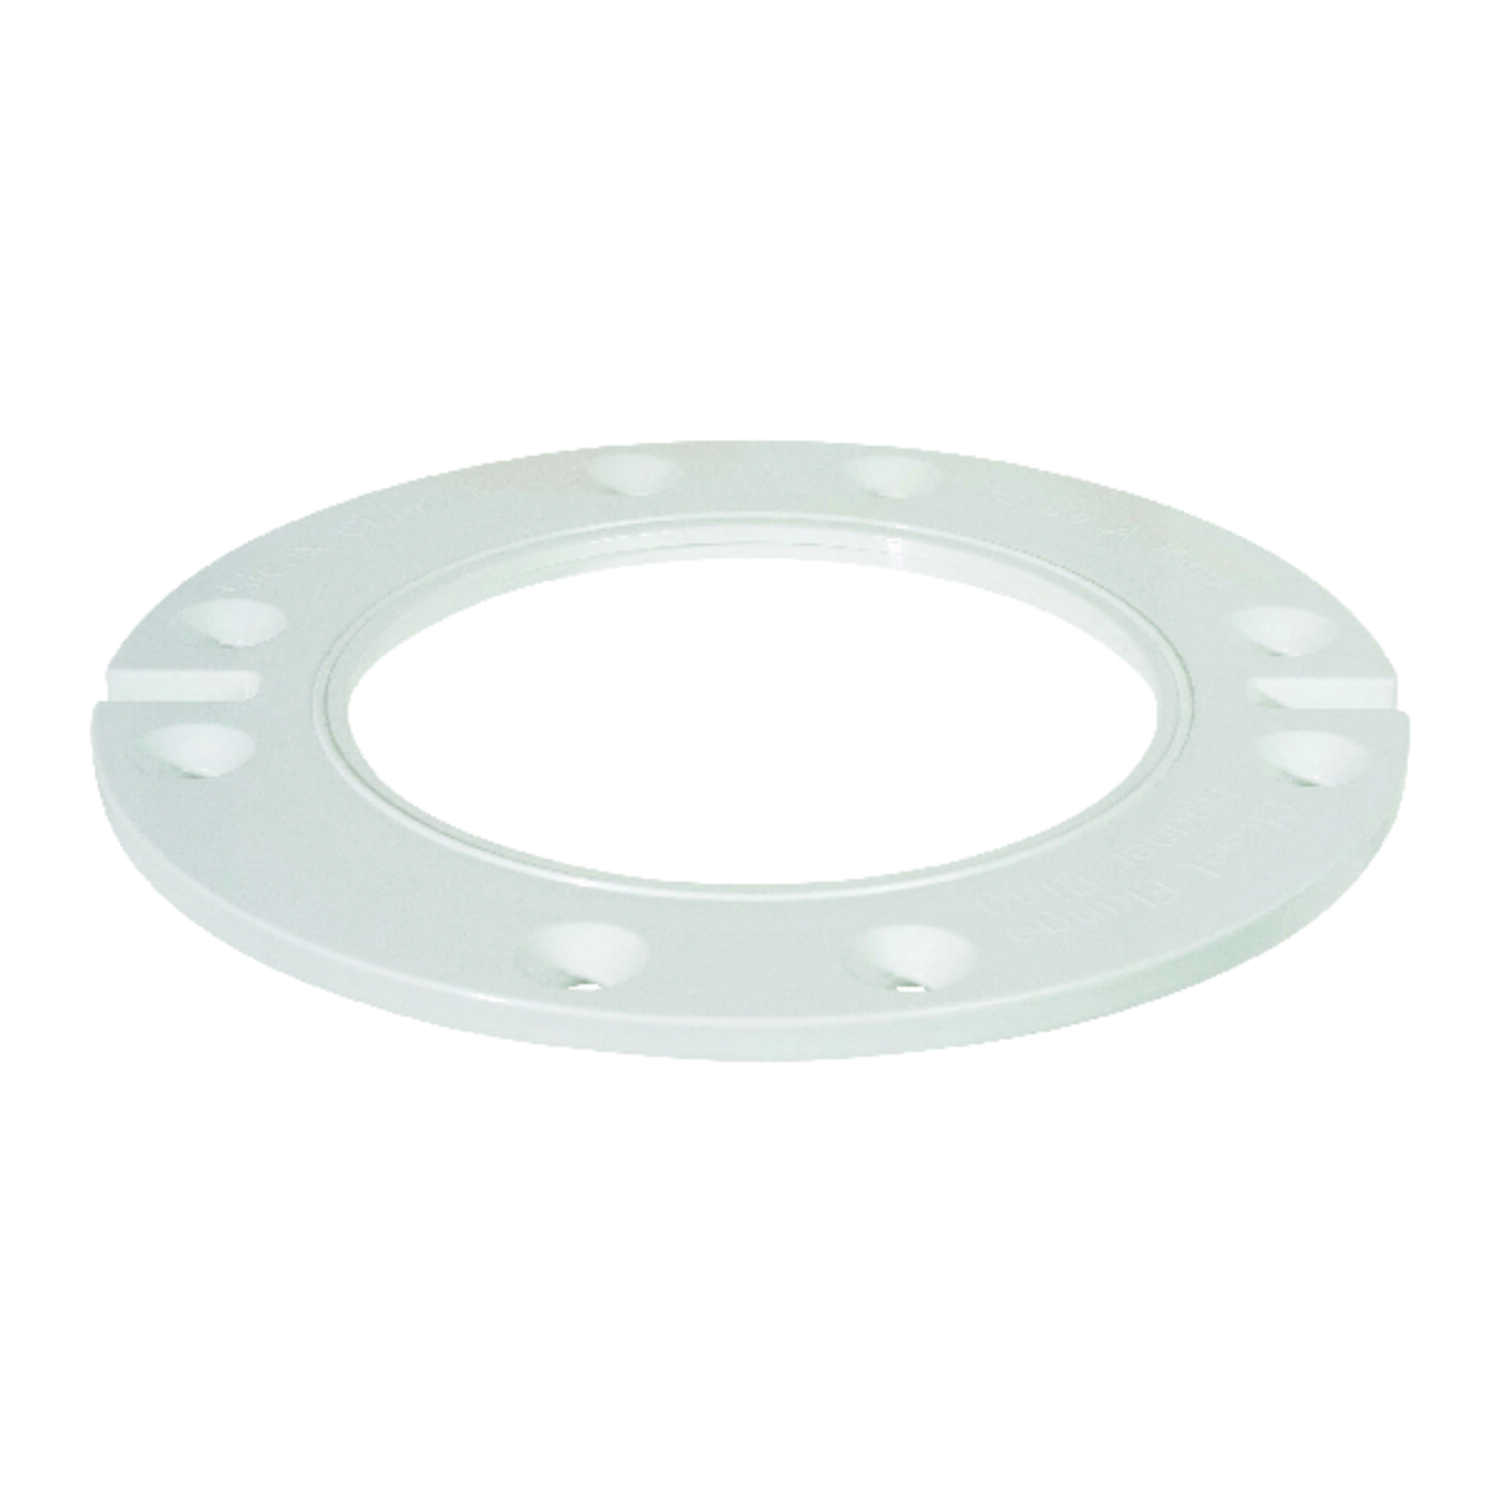 Sioux Chief  ABS  Closet Flange Extension Ring